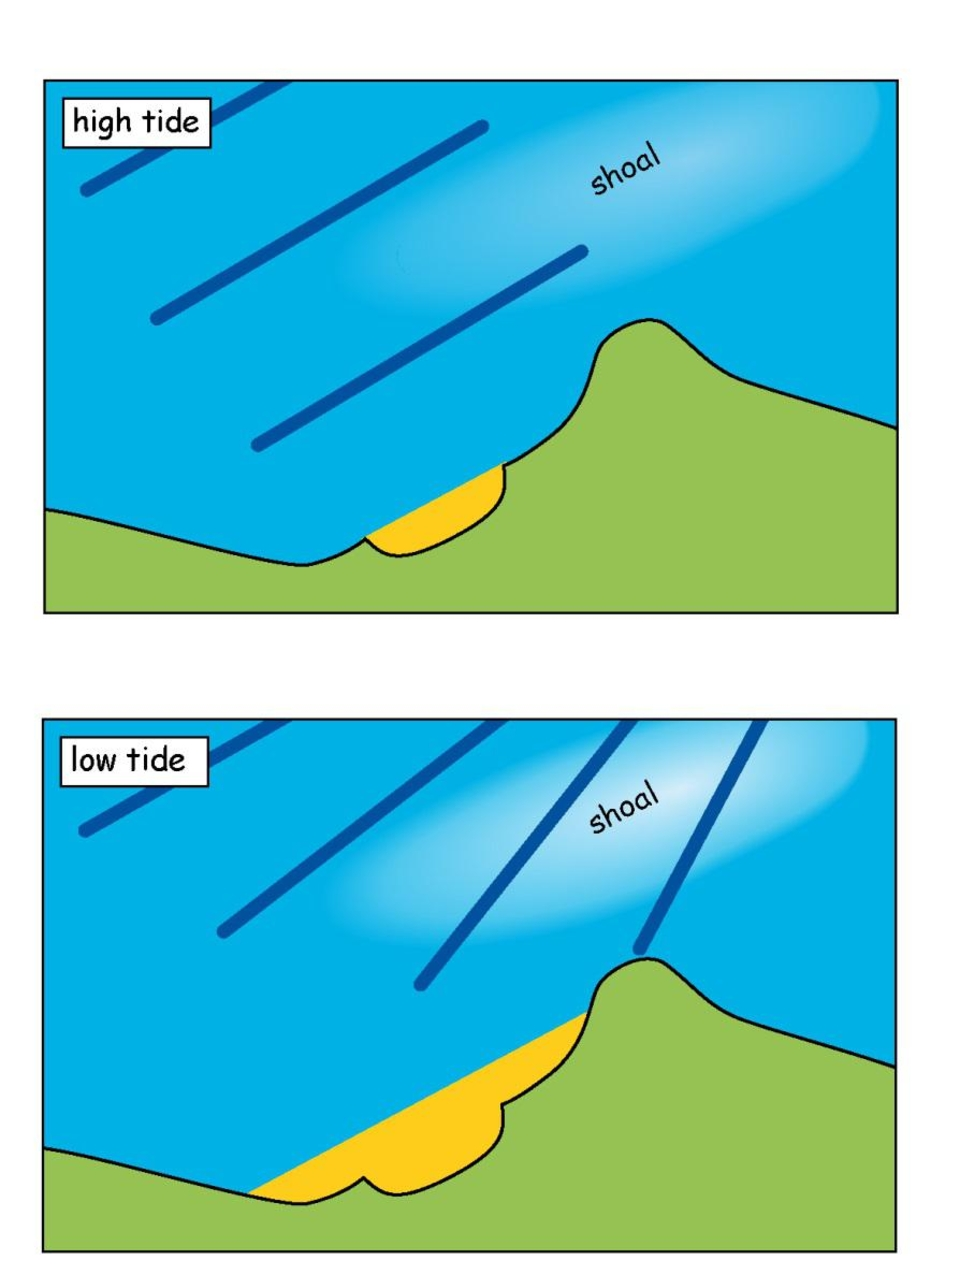 An offshore shoal in the right place could bend the waves away from a beach at low tide, making them bigger at high tide.